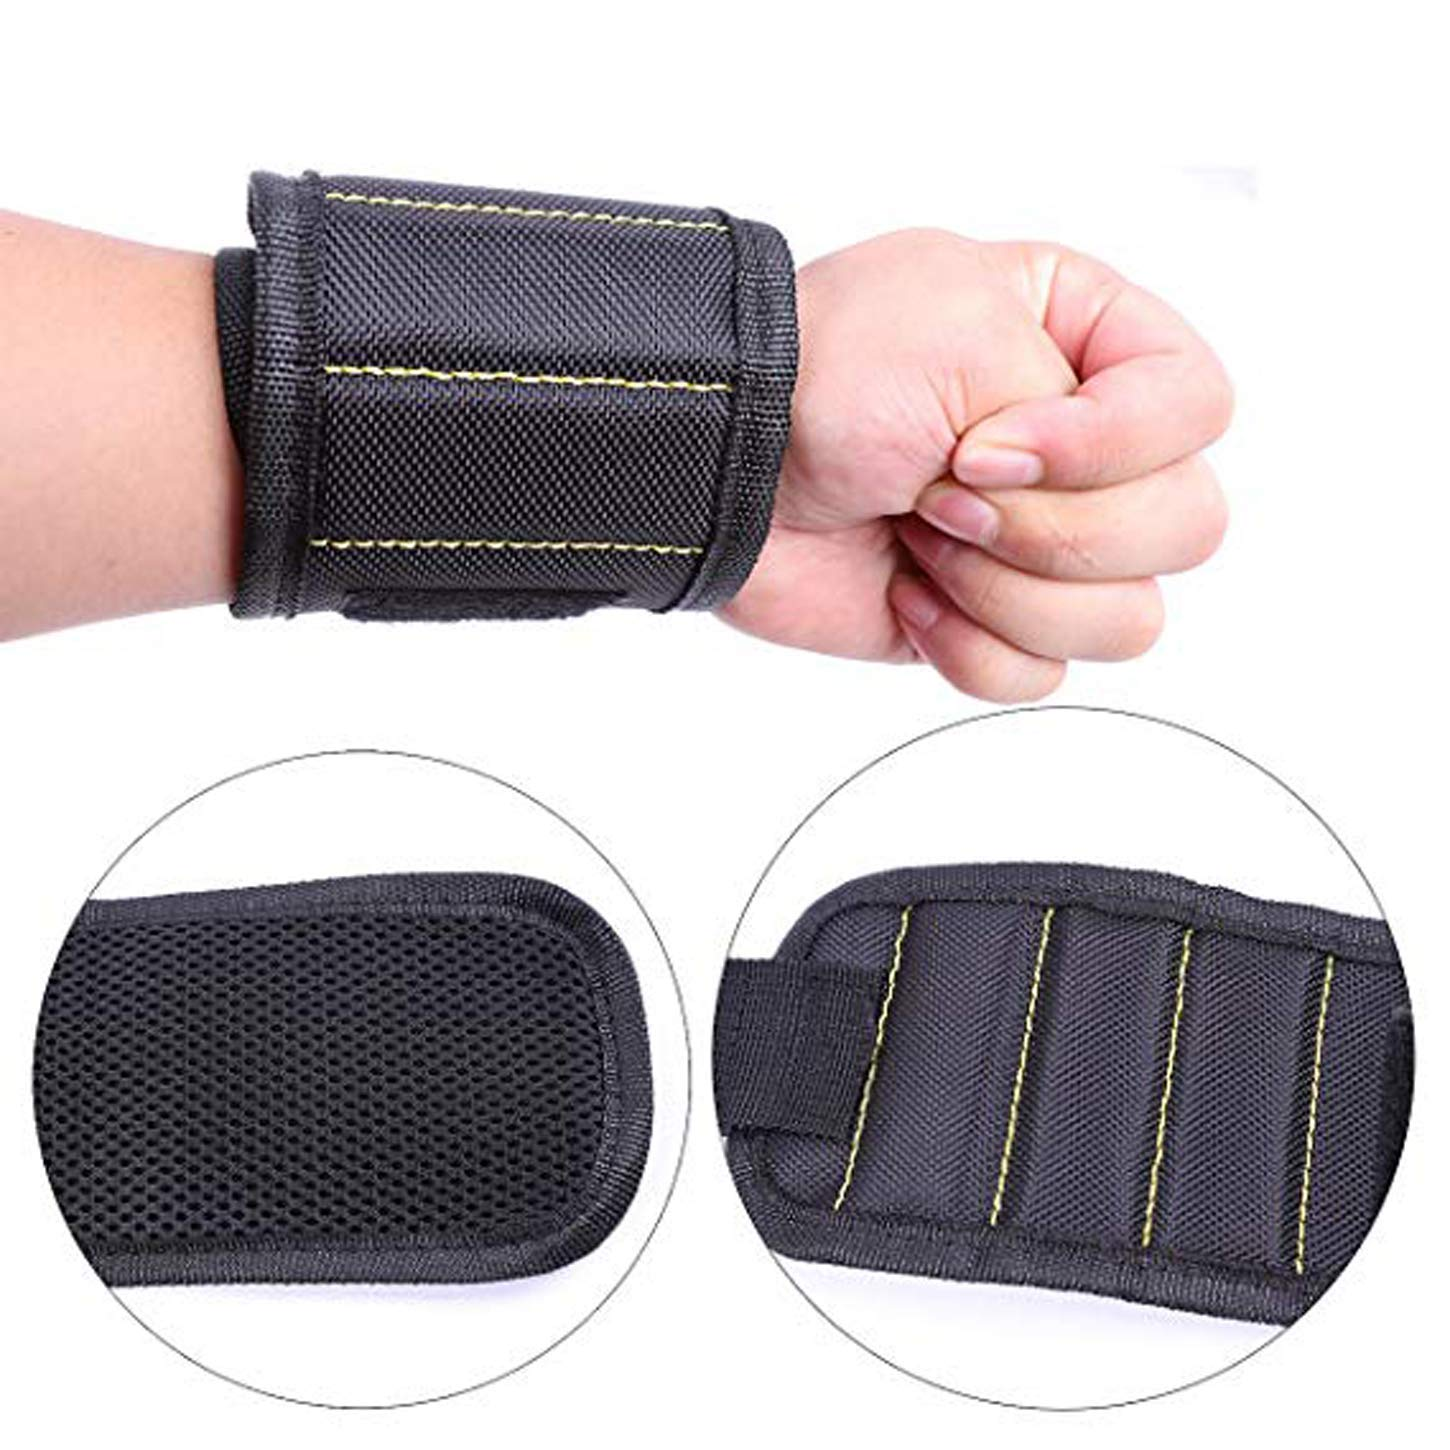 Magnetic Wristband for Holding Tools Screws Nails Bolts Drill Bits and Other Home Improvements, 5 Magnets and Adjustable Breathable Wrist Strap Design, Lightweight&Durable (Black)